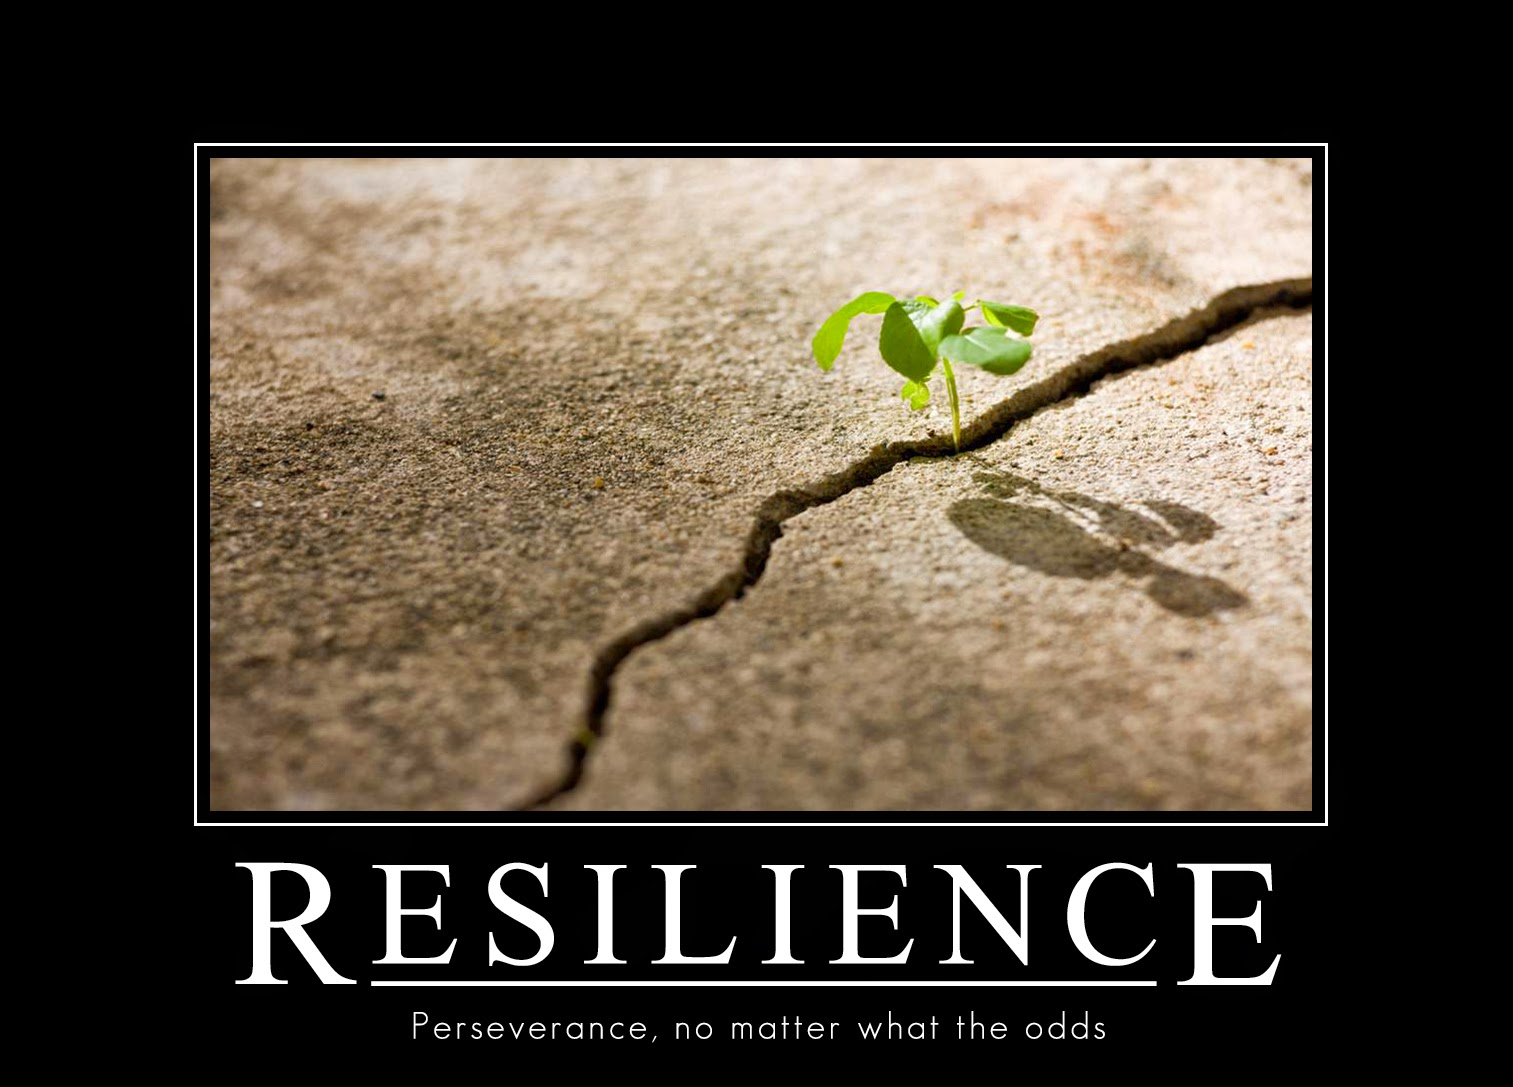 Resilience Quotes Club Master Hoang Post 198 Continued Eight Birds The Condor